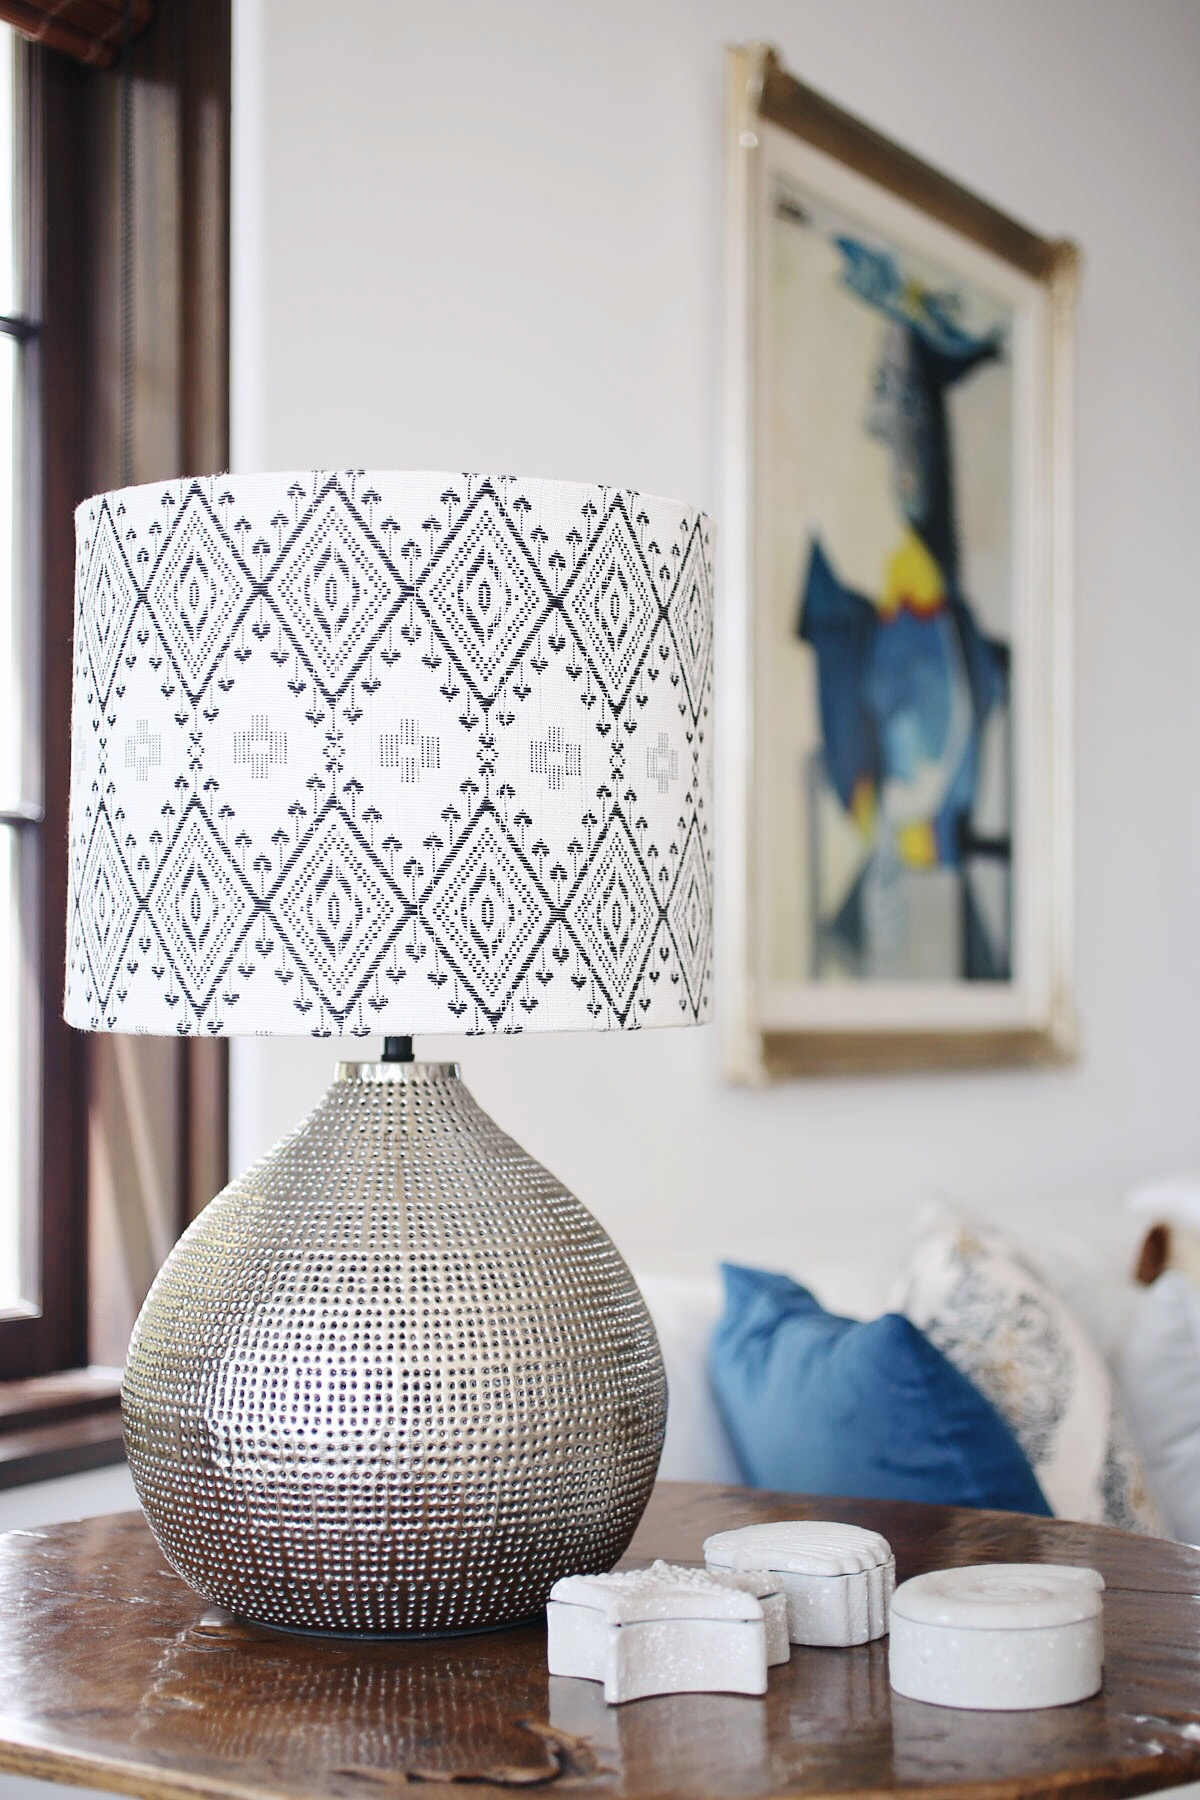 boho lampshade and metallic table lamp via @citysage